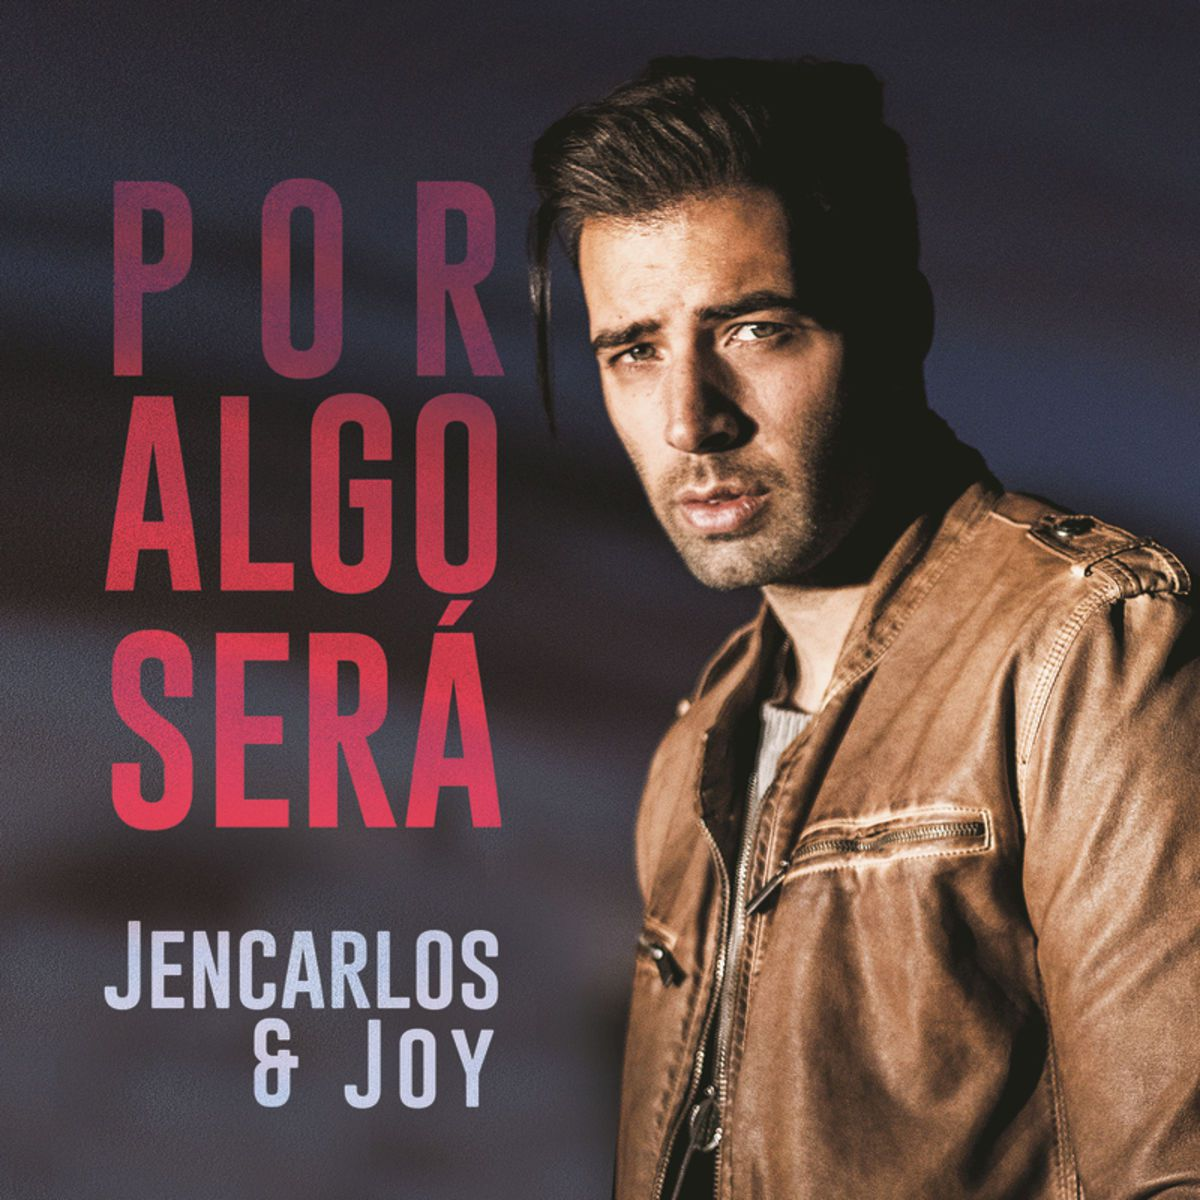 Photo of Jean carlos Canela presenta su nuevo single junto a Joy